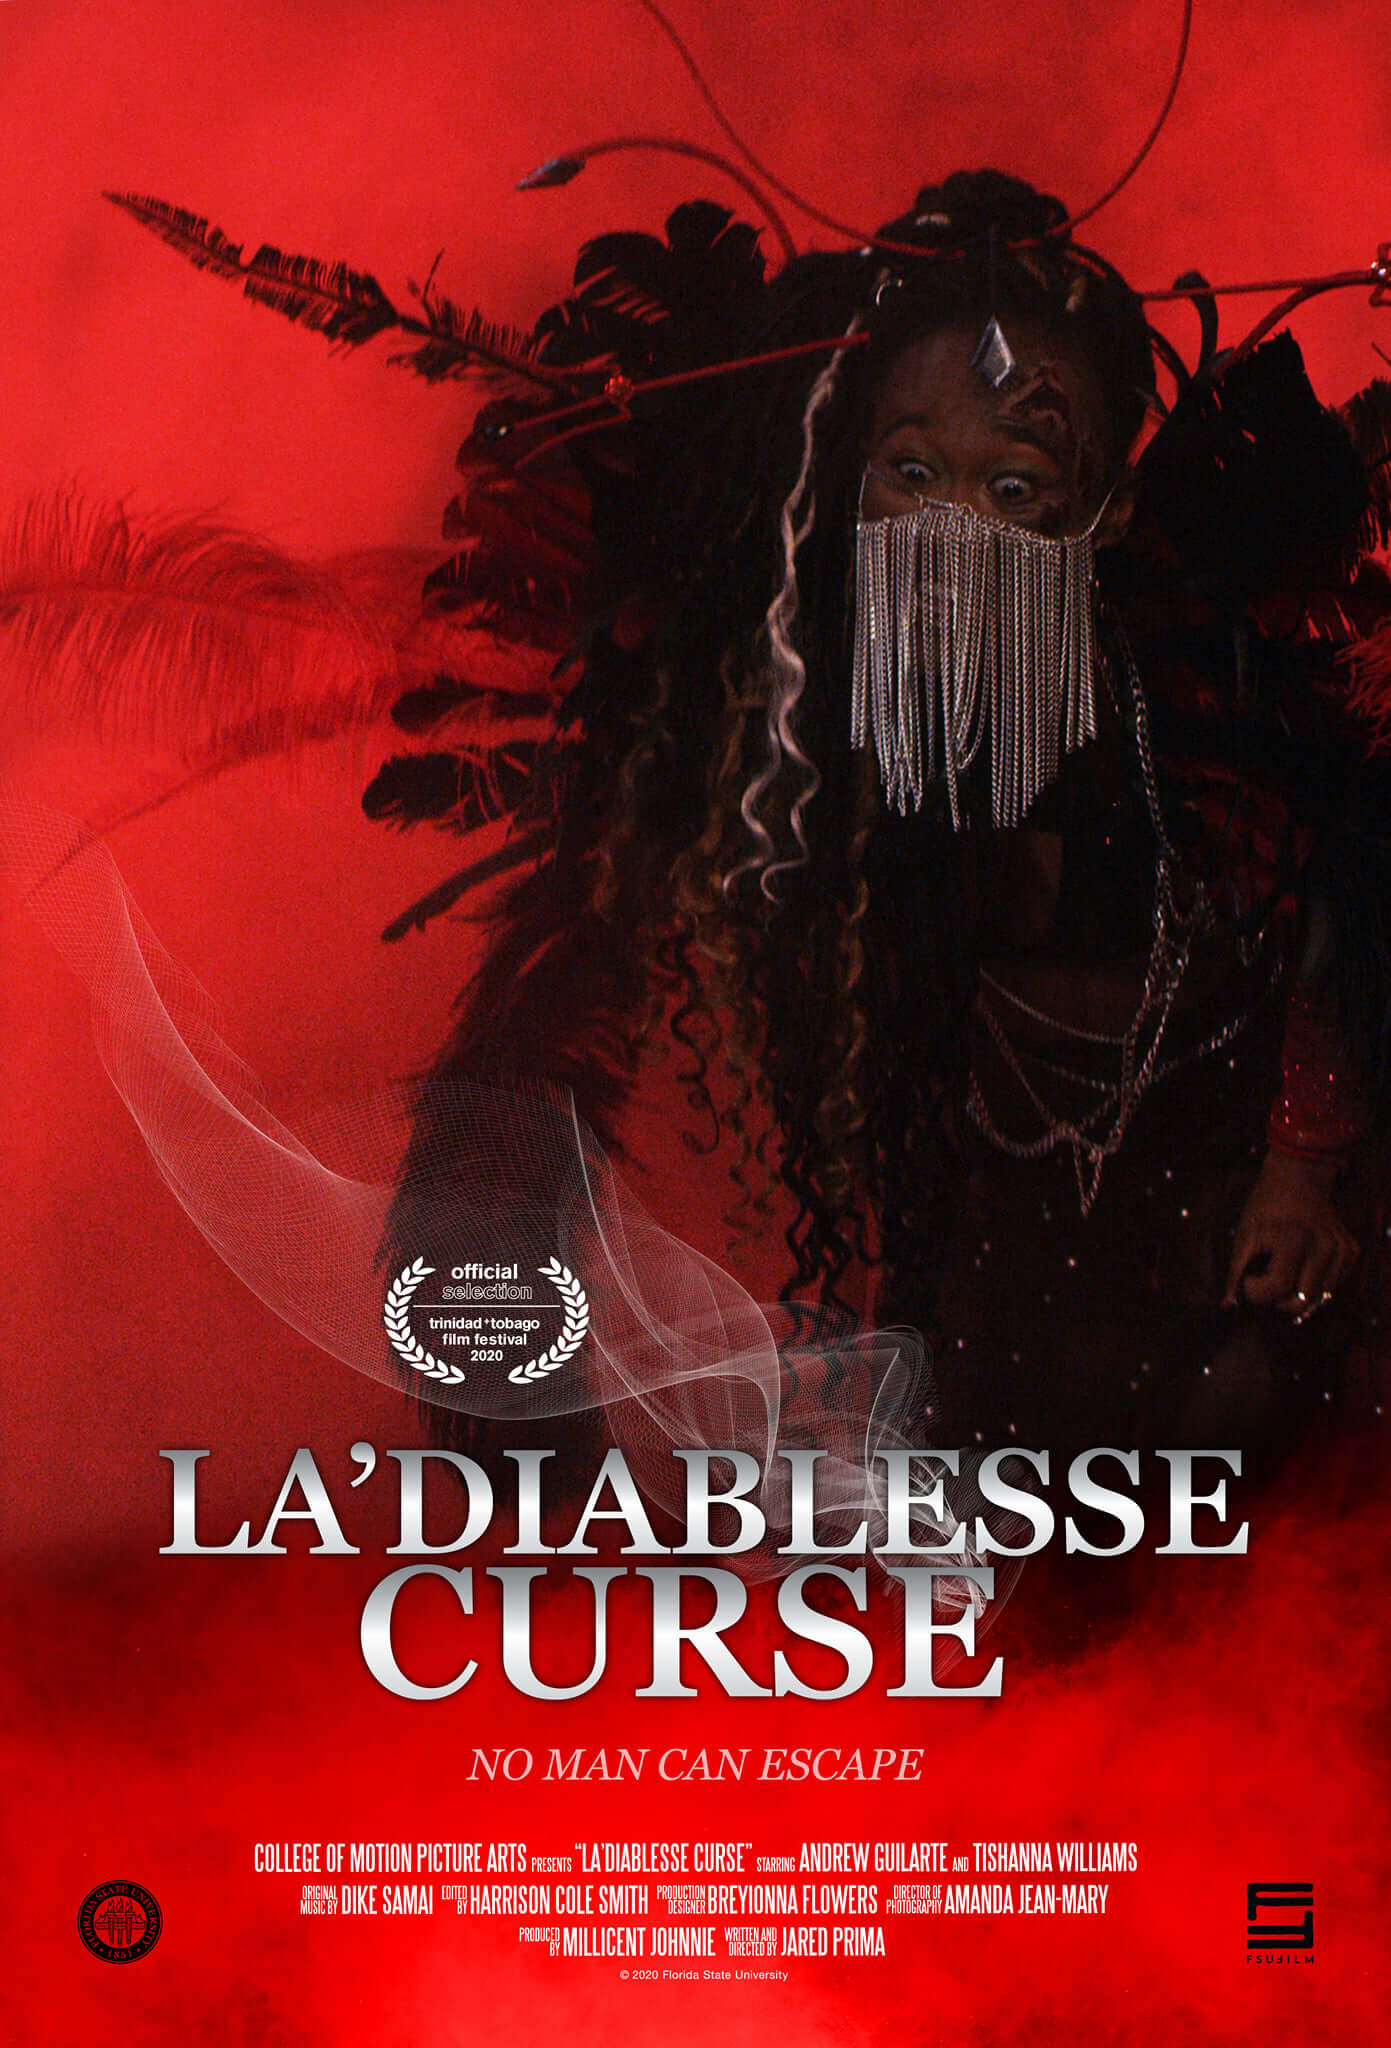 LADIABLESSE CURSE POSTER